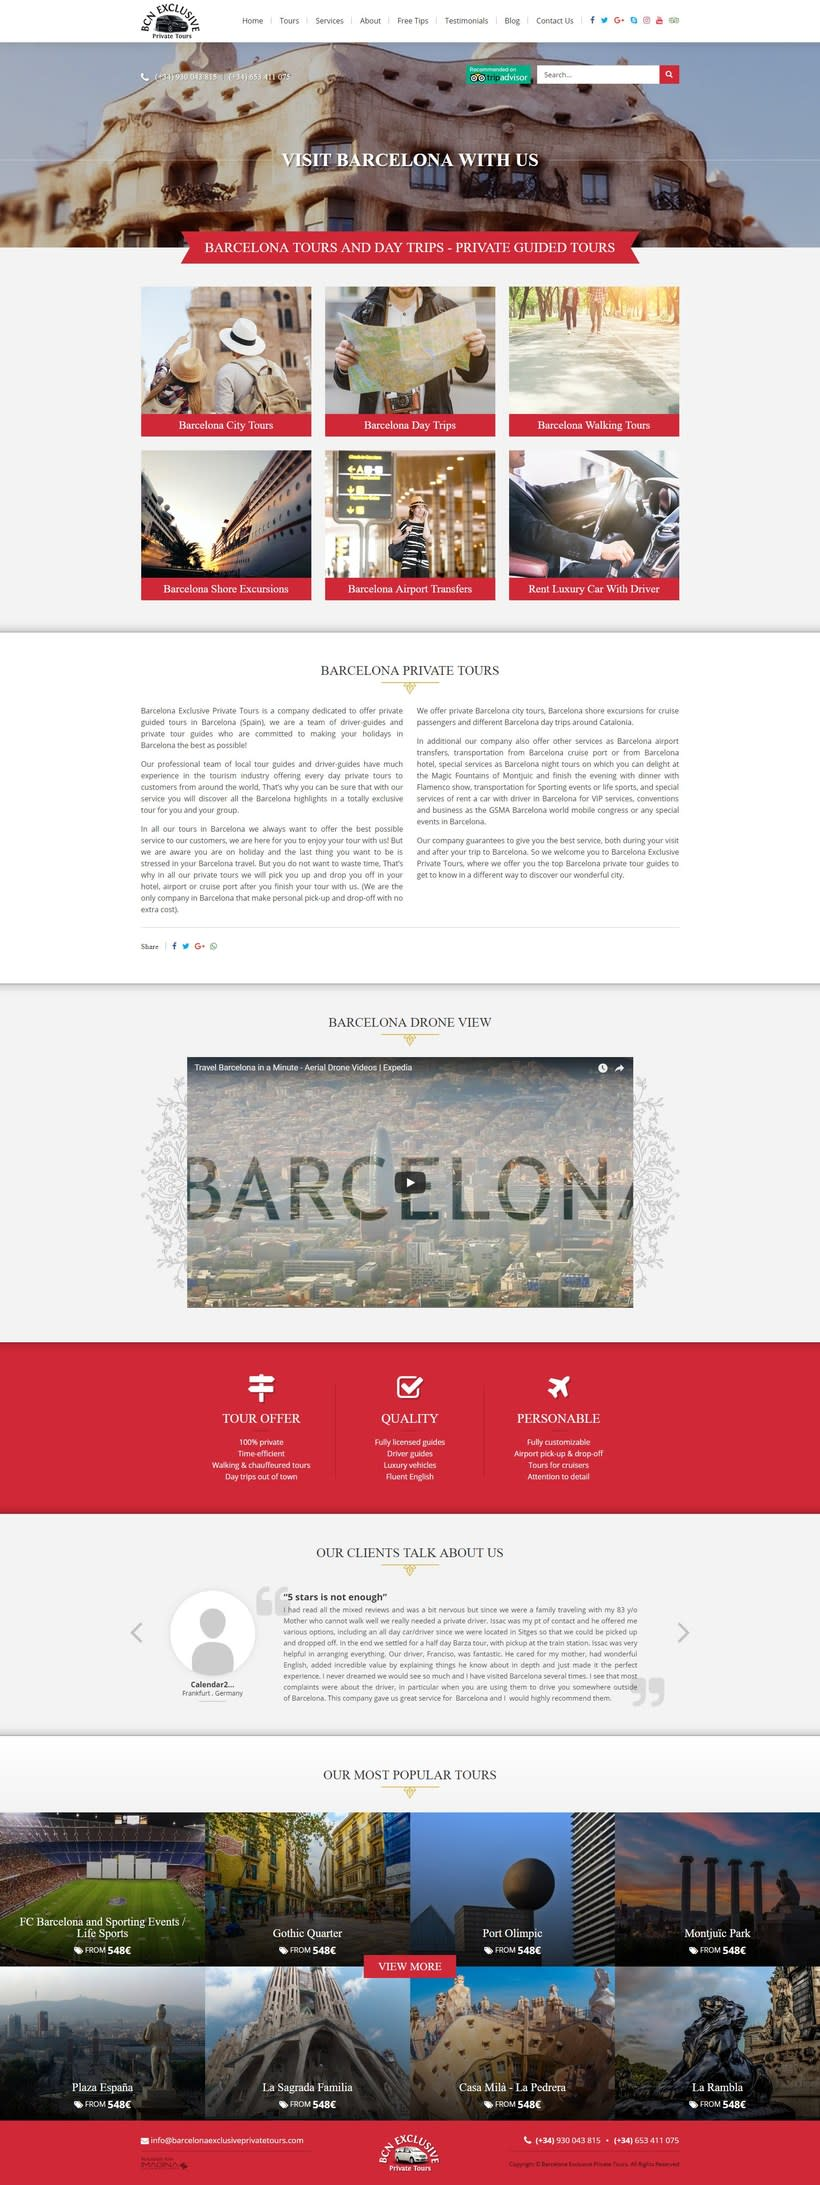 Barcelona Exclusive Private Tours 0